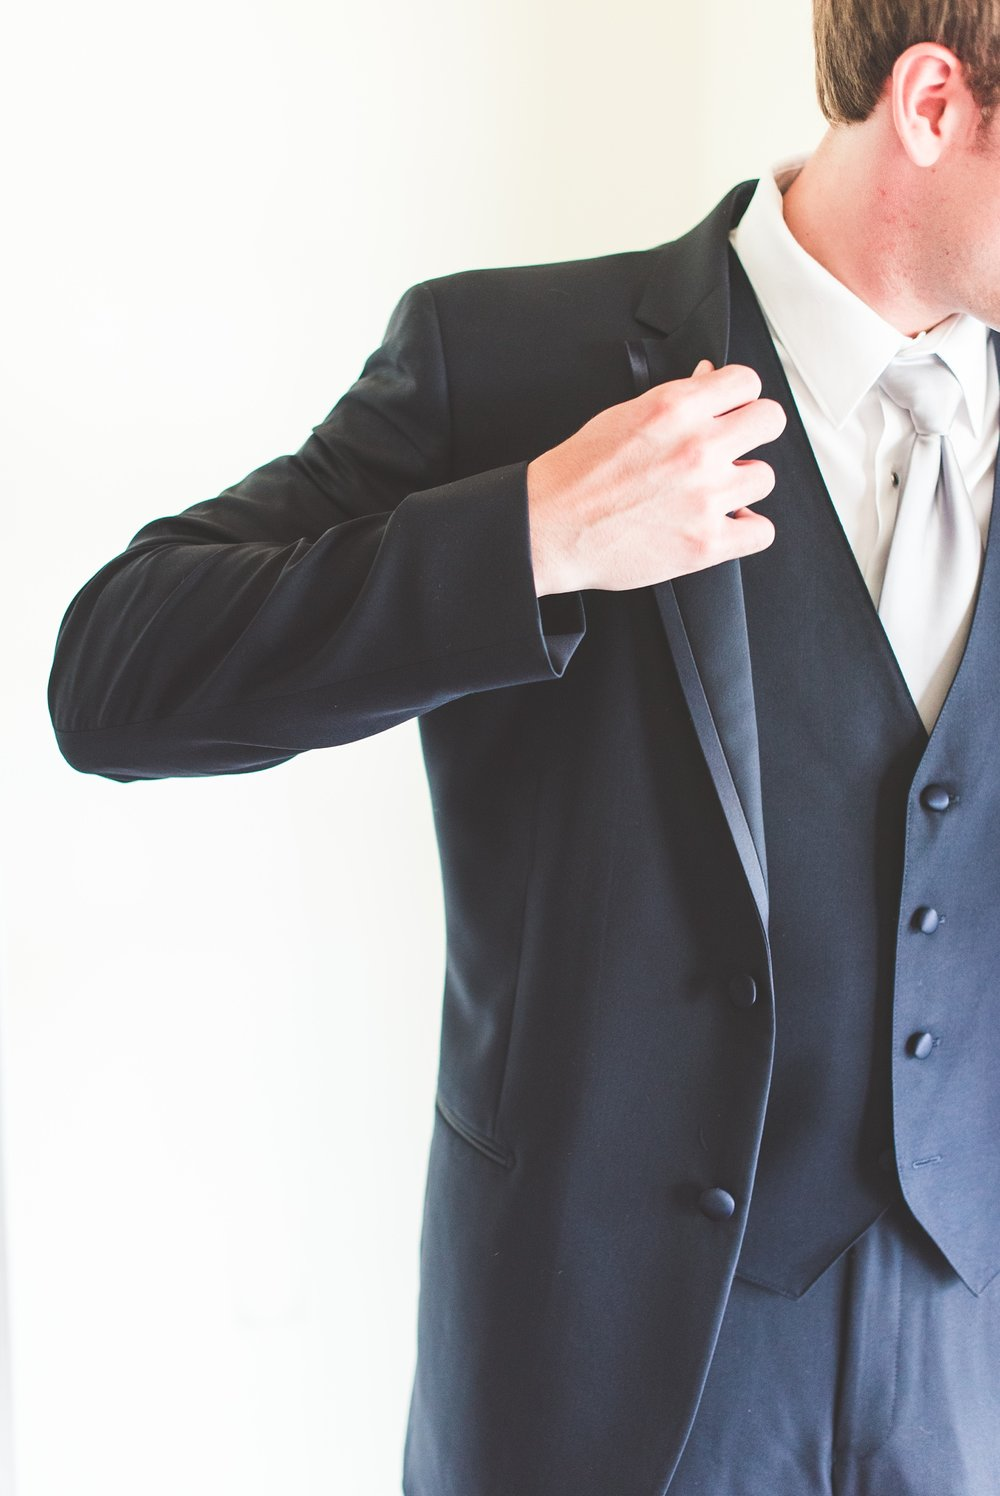 image of groom putting on his jacket getting ready for his wedding